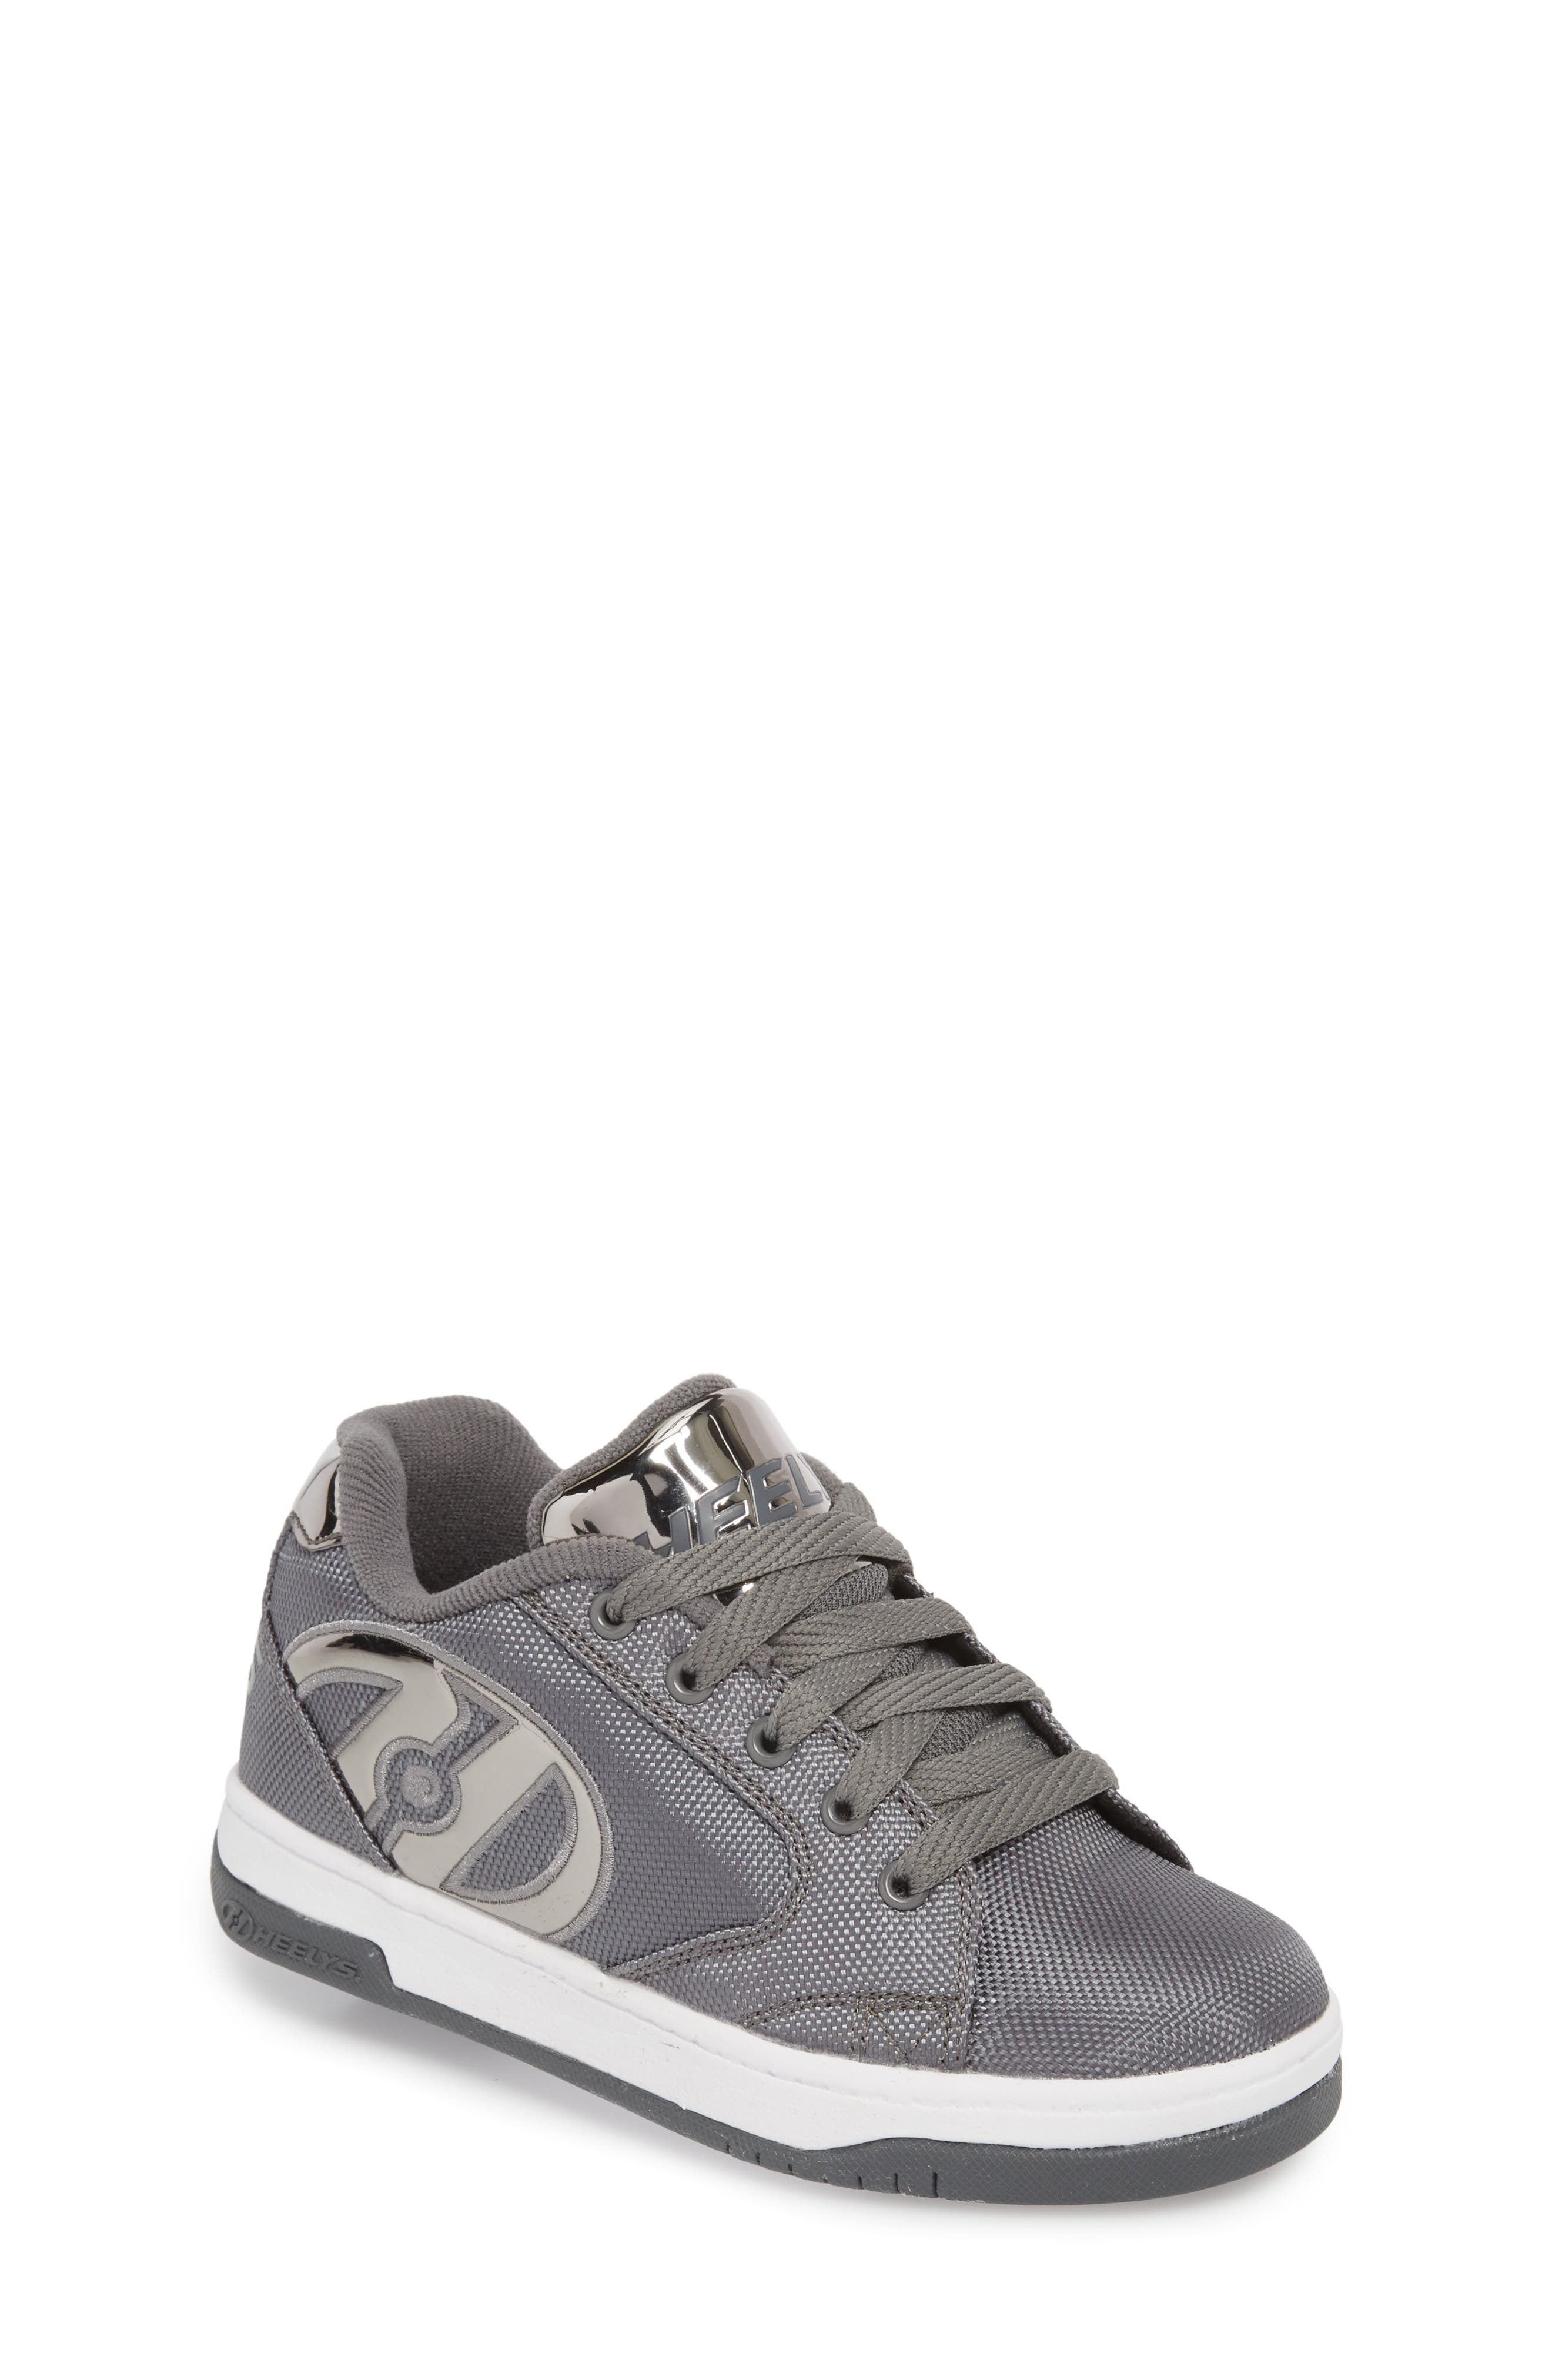 Heels Propel Ballistic Sneaker,                         Main,                         color, CHARCOAL/ PEWTER